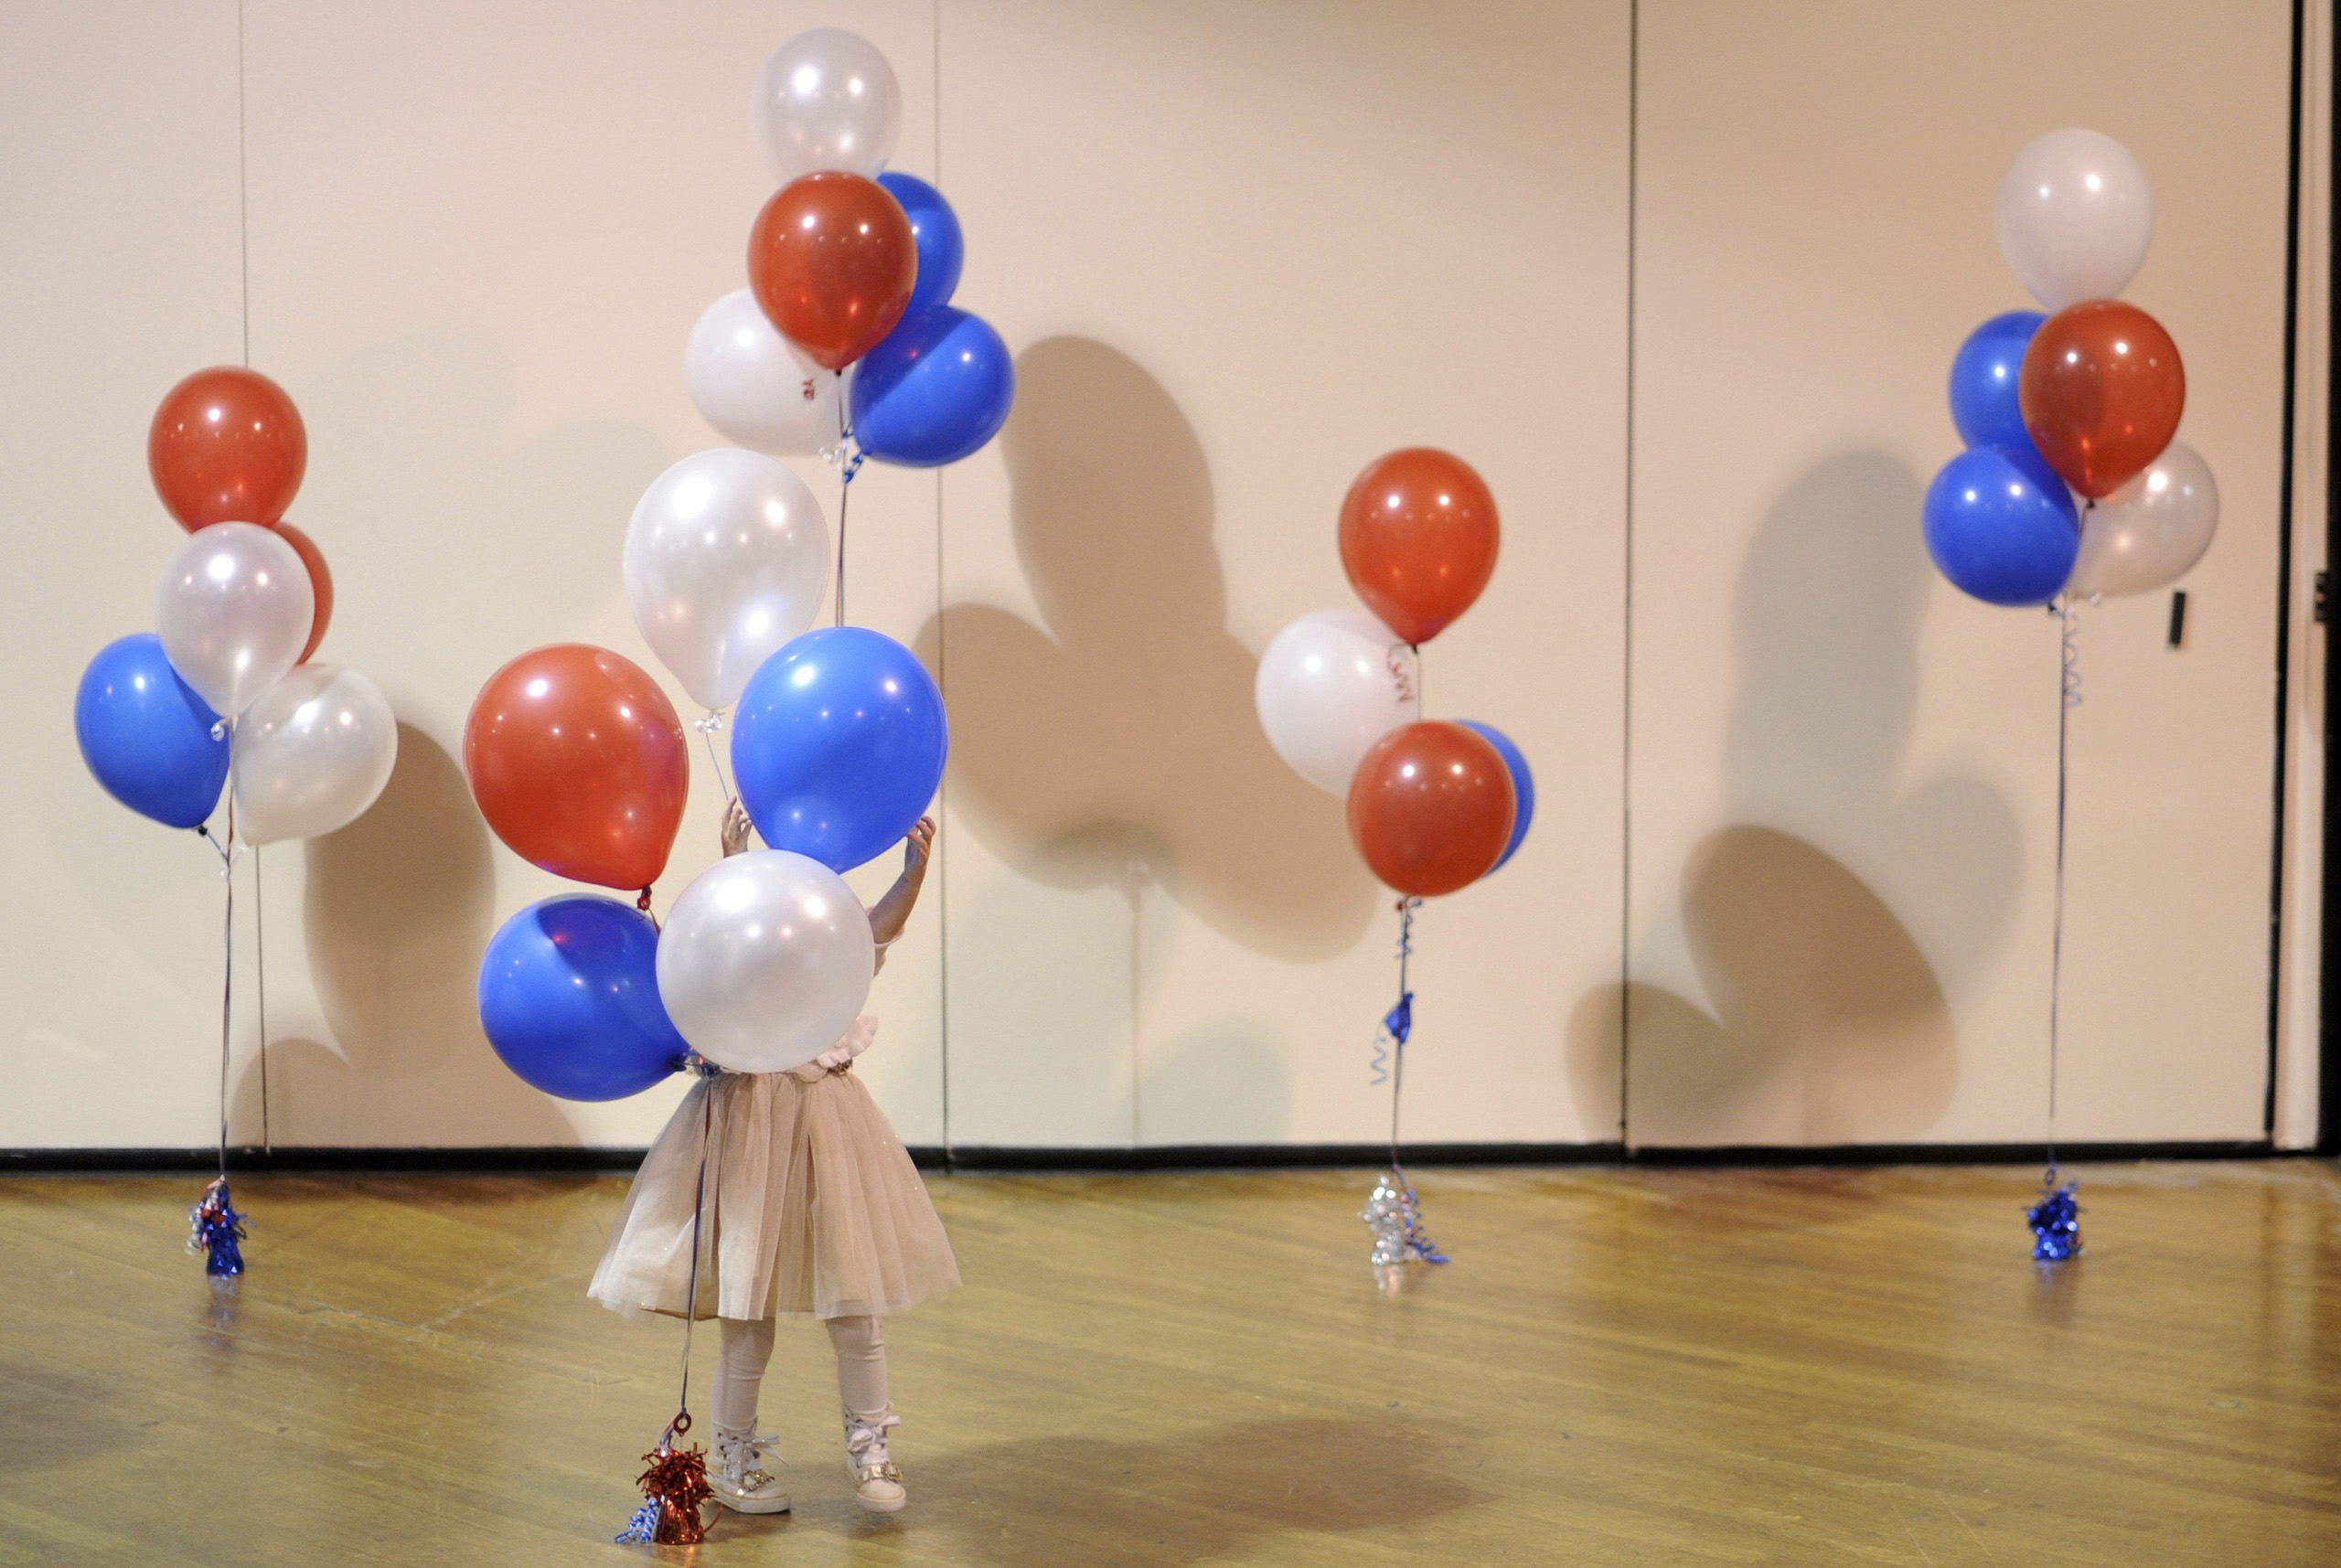 A little girl plays with balloons at Republican U.S. Senate candidate Scott Brown's midterm election night rally in Manchester, New Hampshire on Nov. 4, 2014.